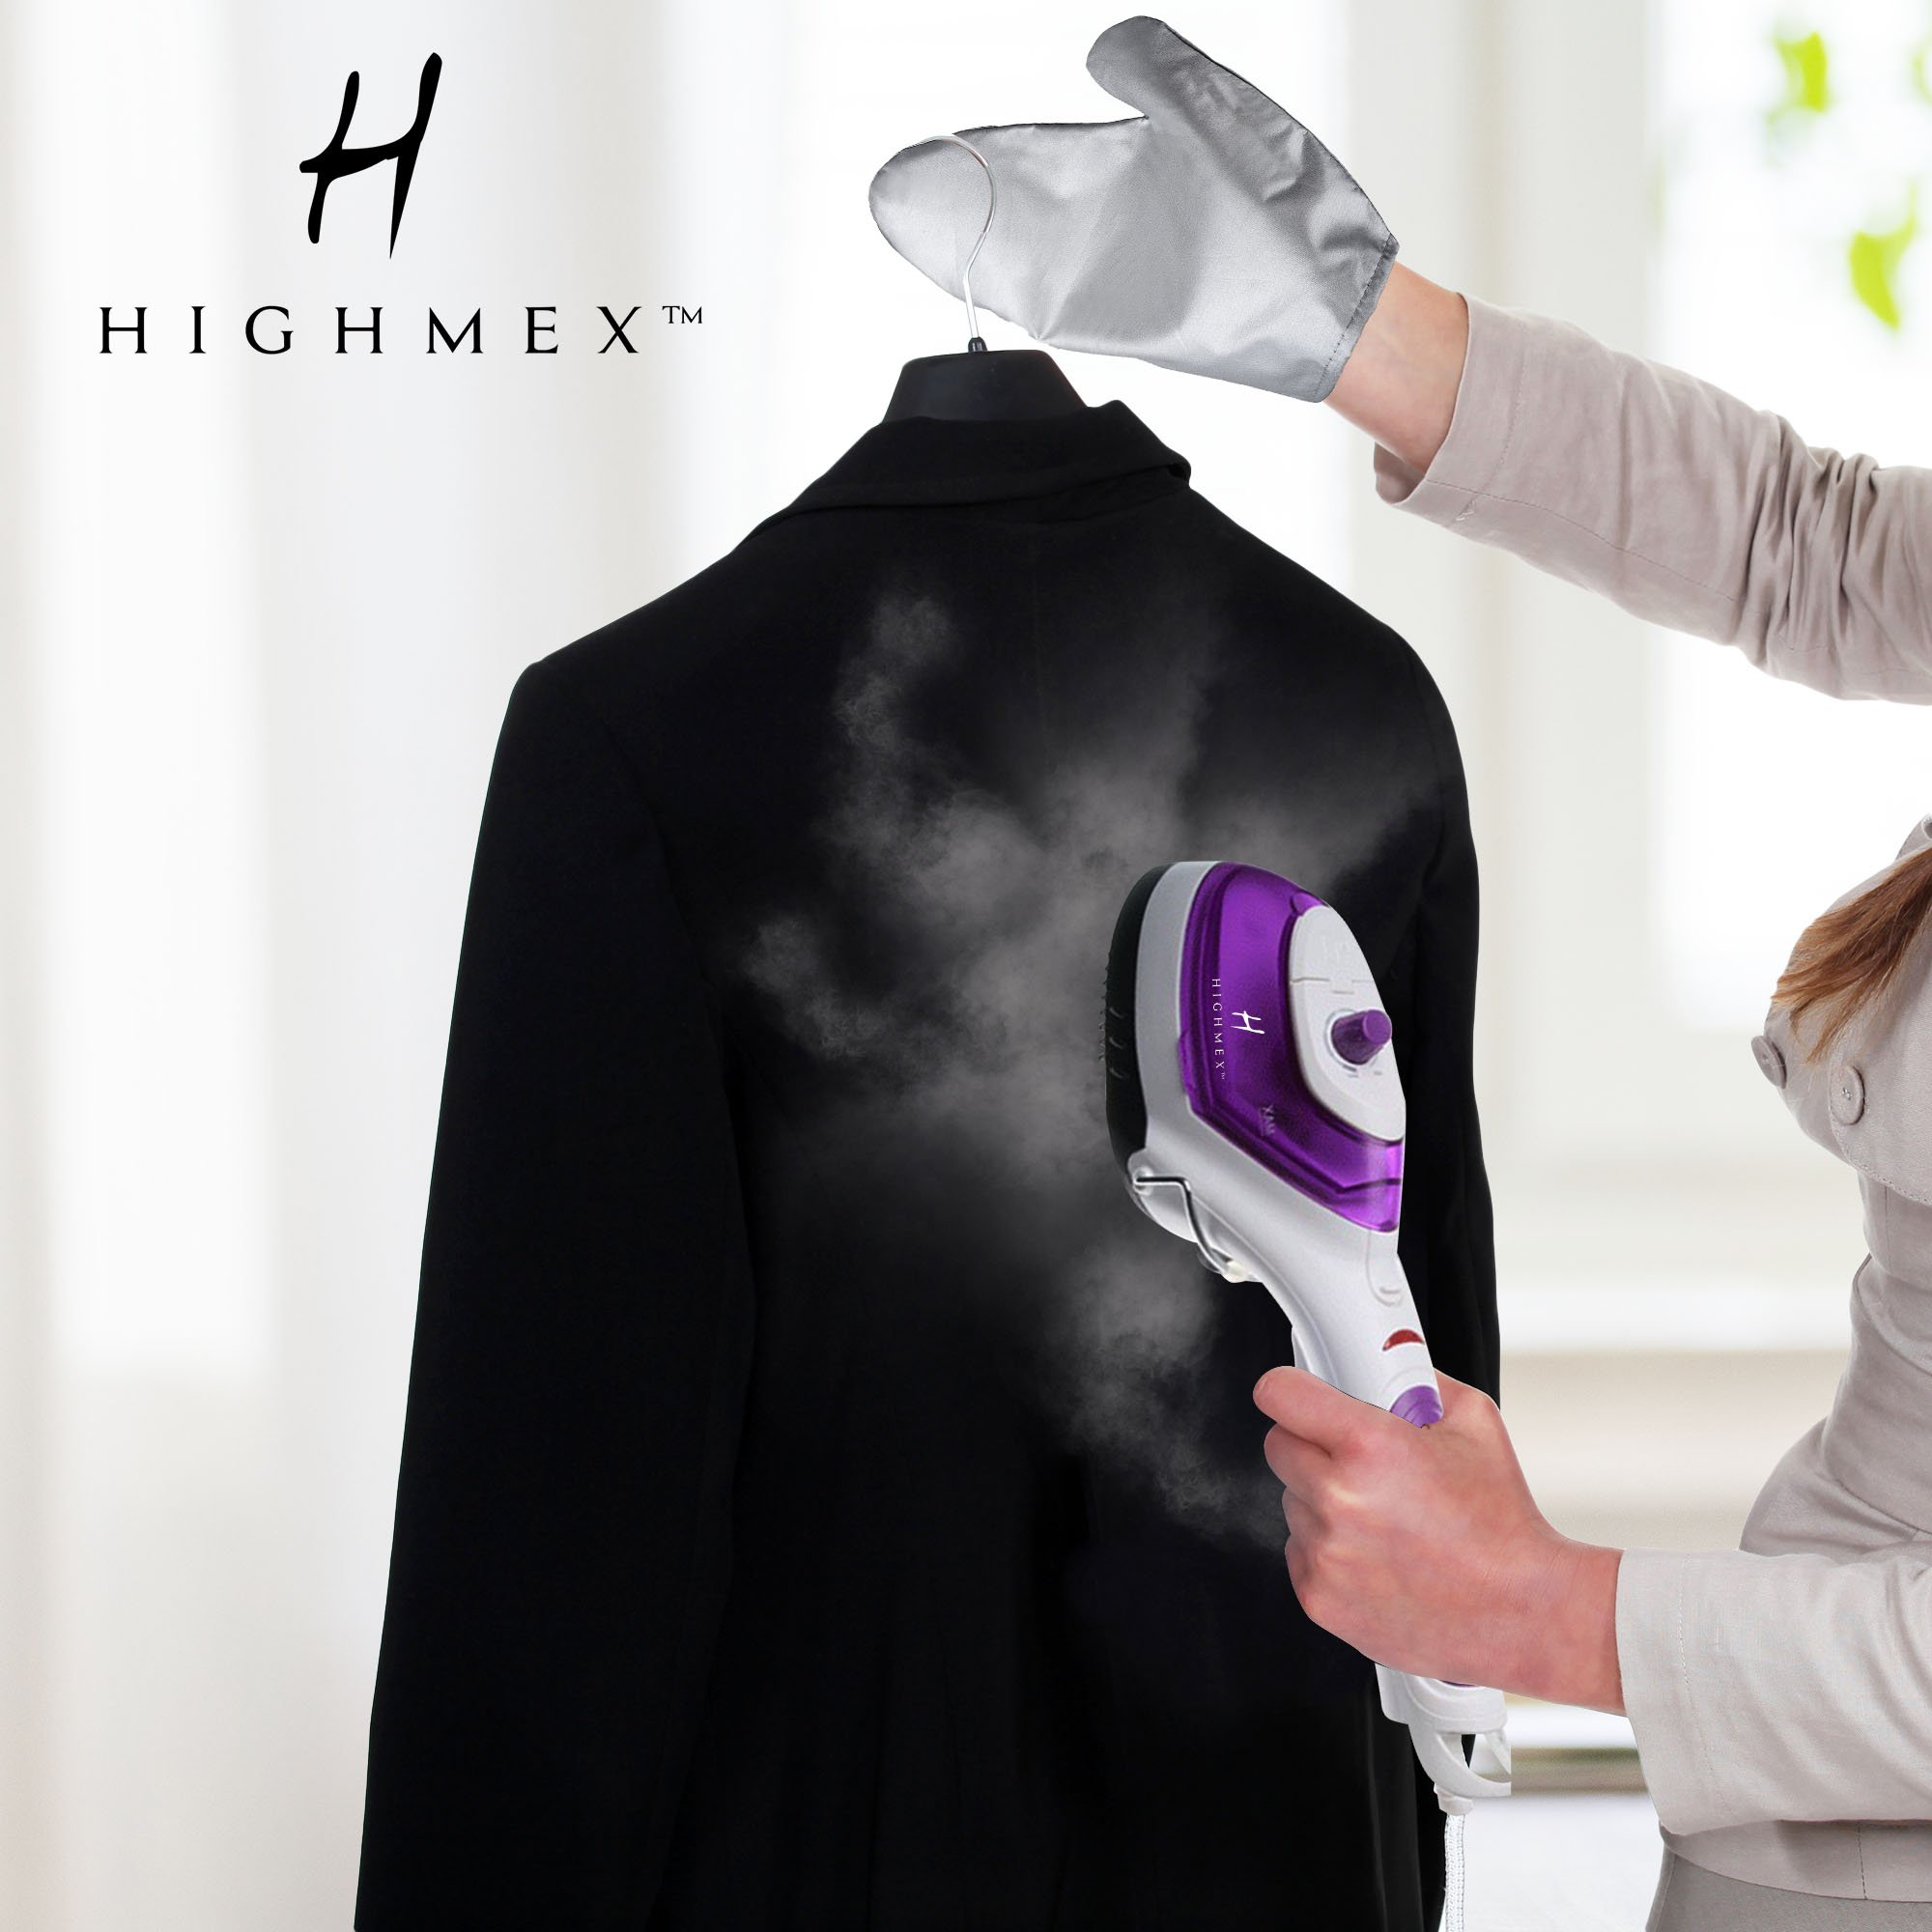 Portable Hand Held Clothing Steamer: Mini Steam Iron For Clothes, Curtains,  Bedding And More   Compact Hand Steamer For Home Or Travel Use   Fast Heat  ...